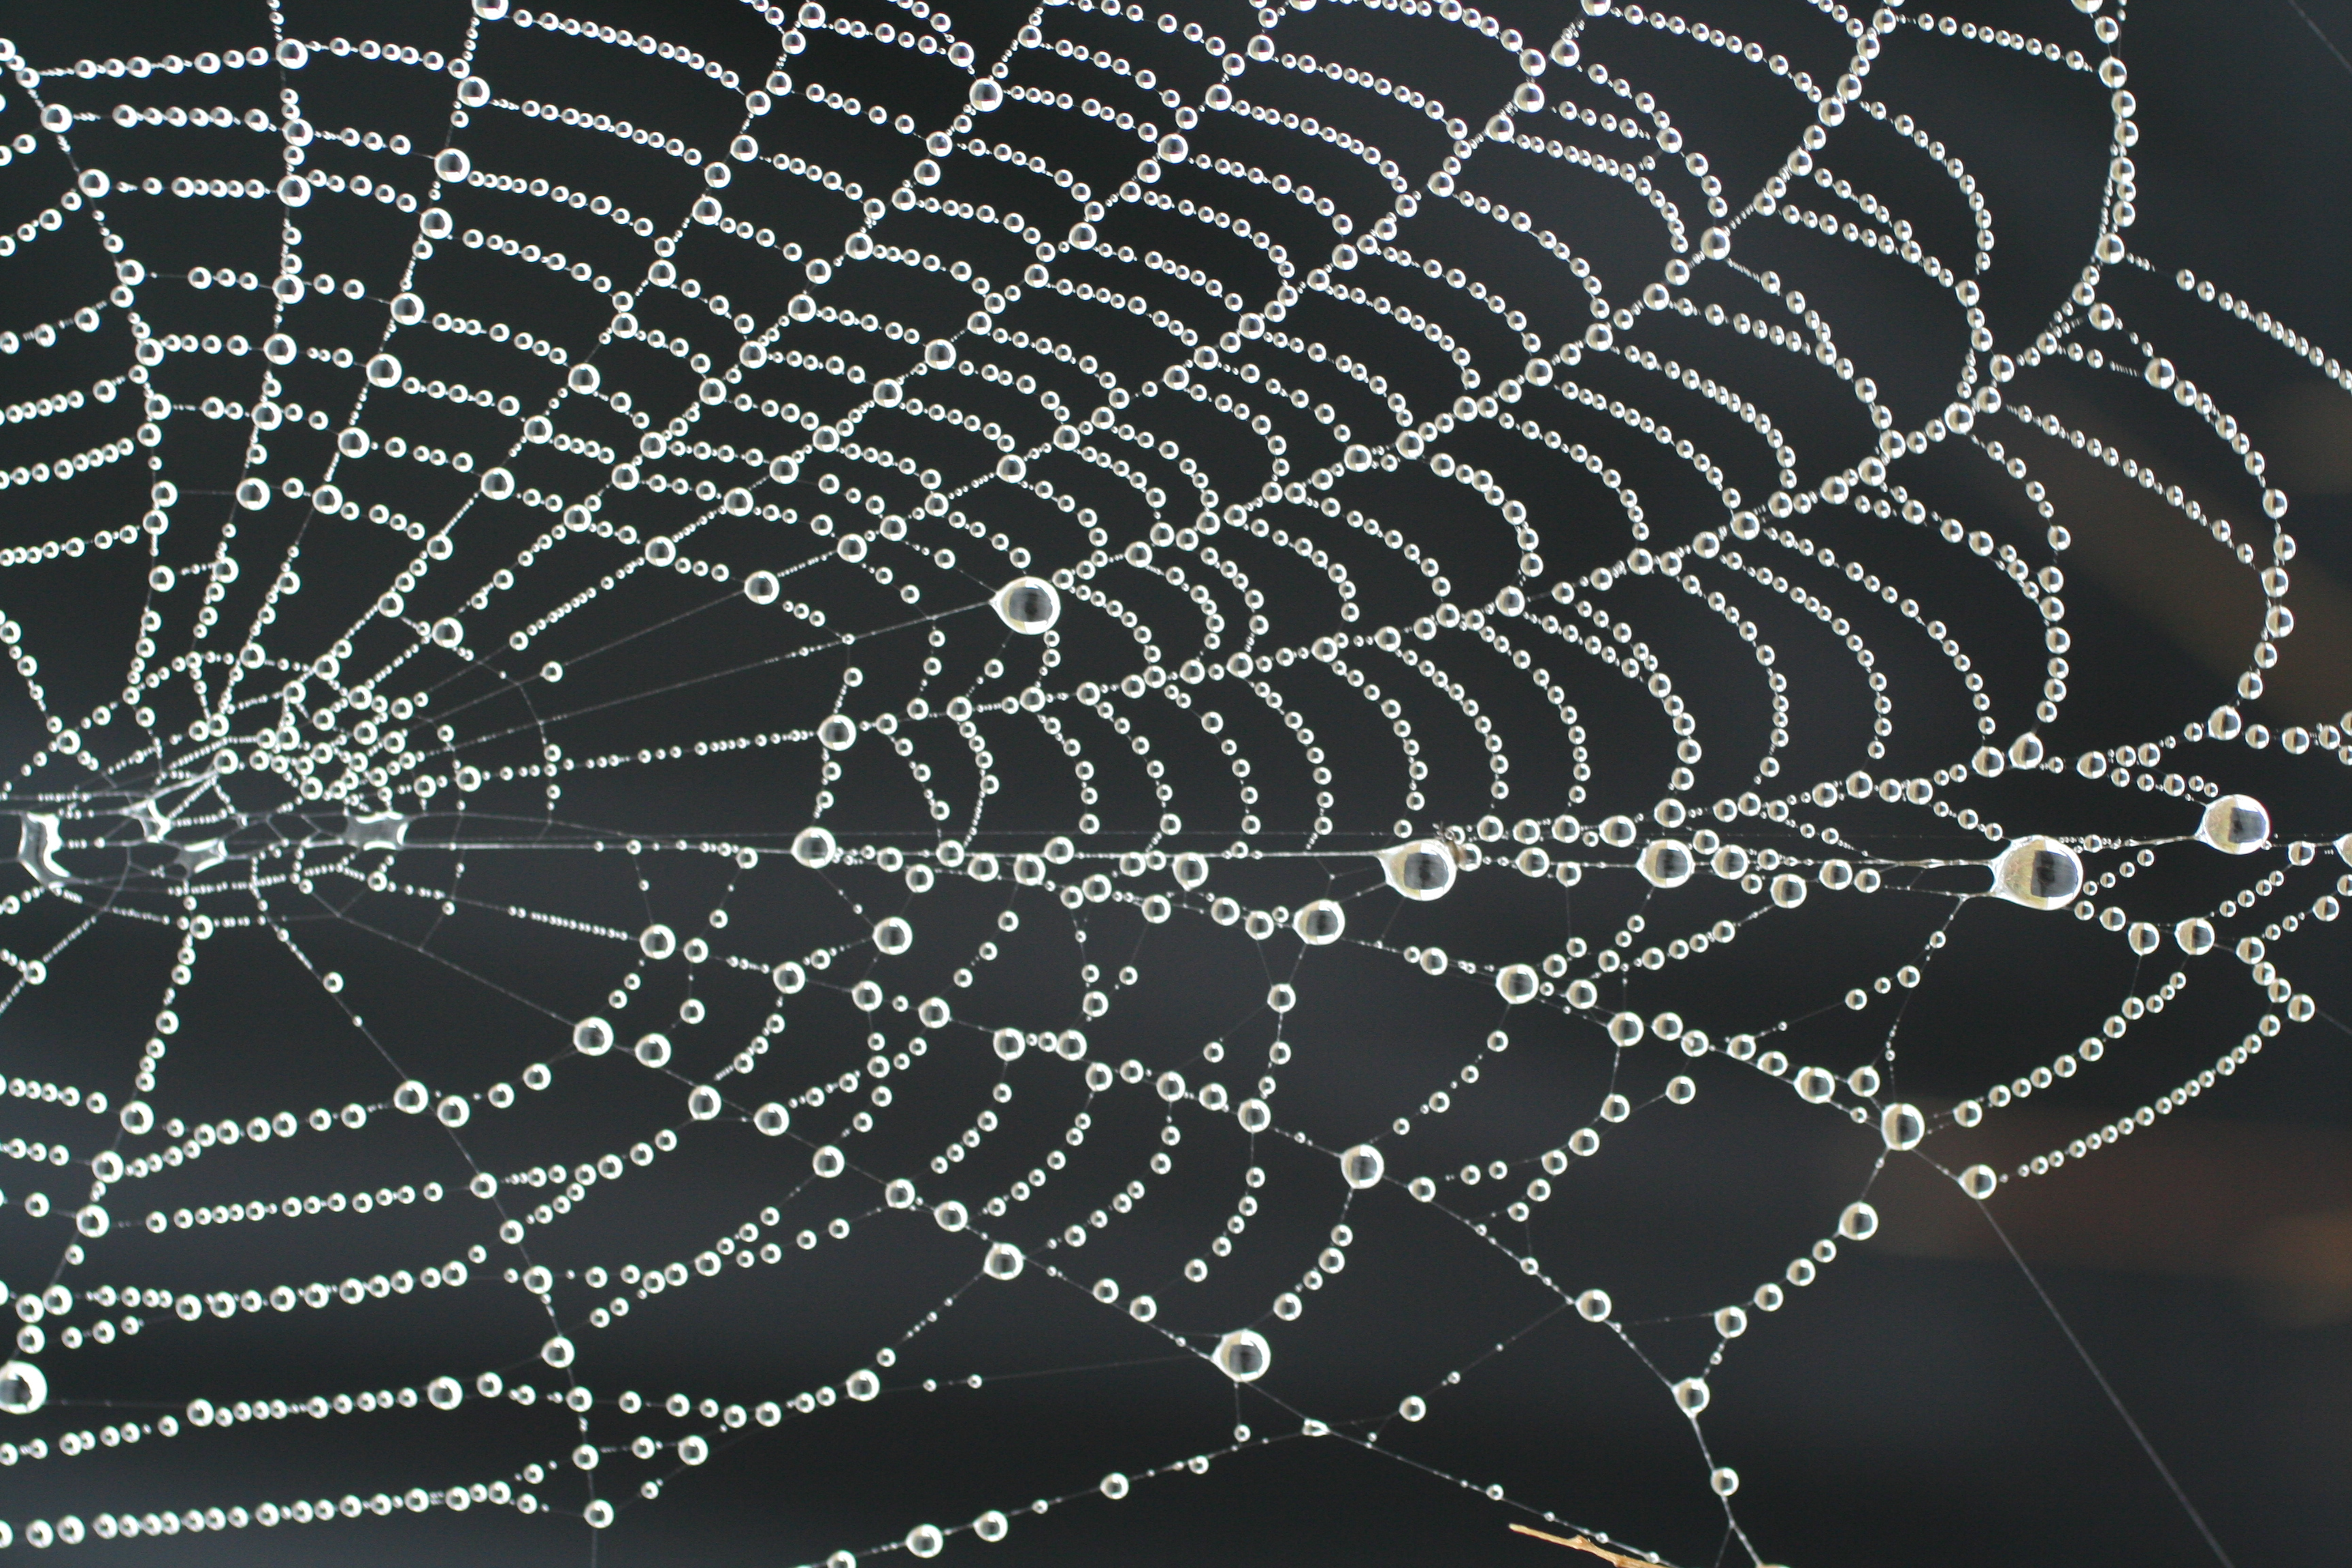 Spider_web_necklace_with_pearls_of_dew